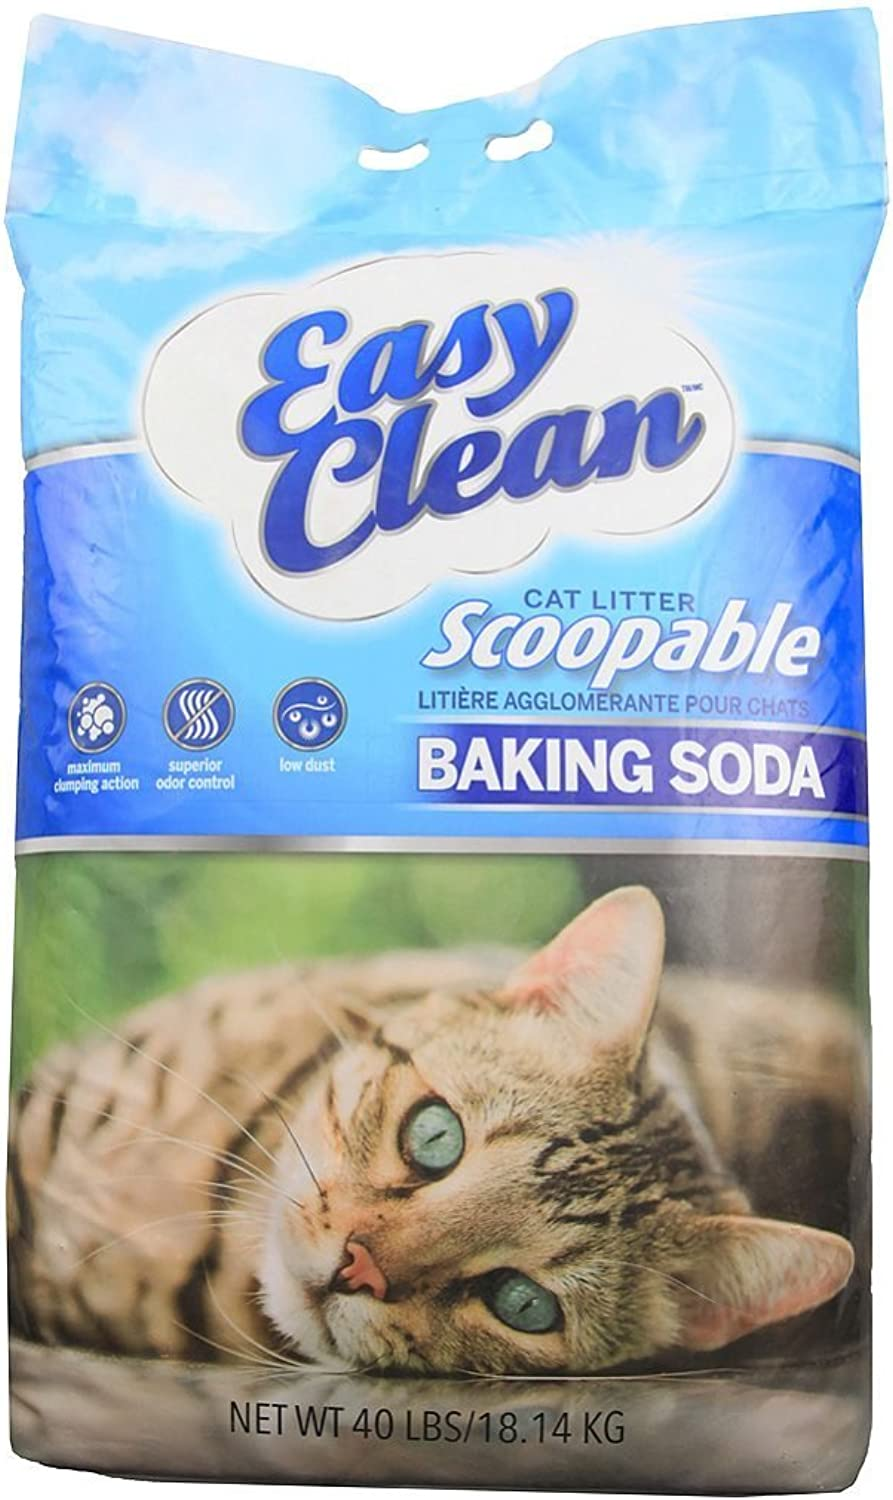 Pestell Pet Products Easy Clean Scoopable Litter with Baking Soda, 40Pound Bag